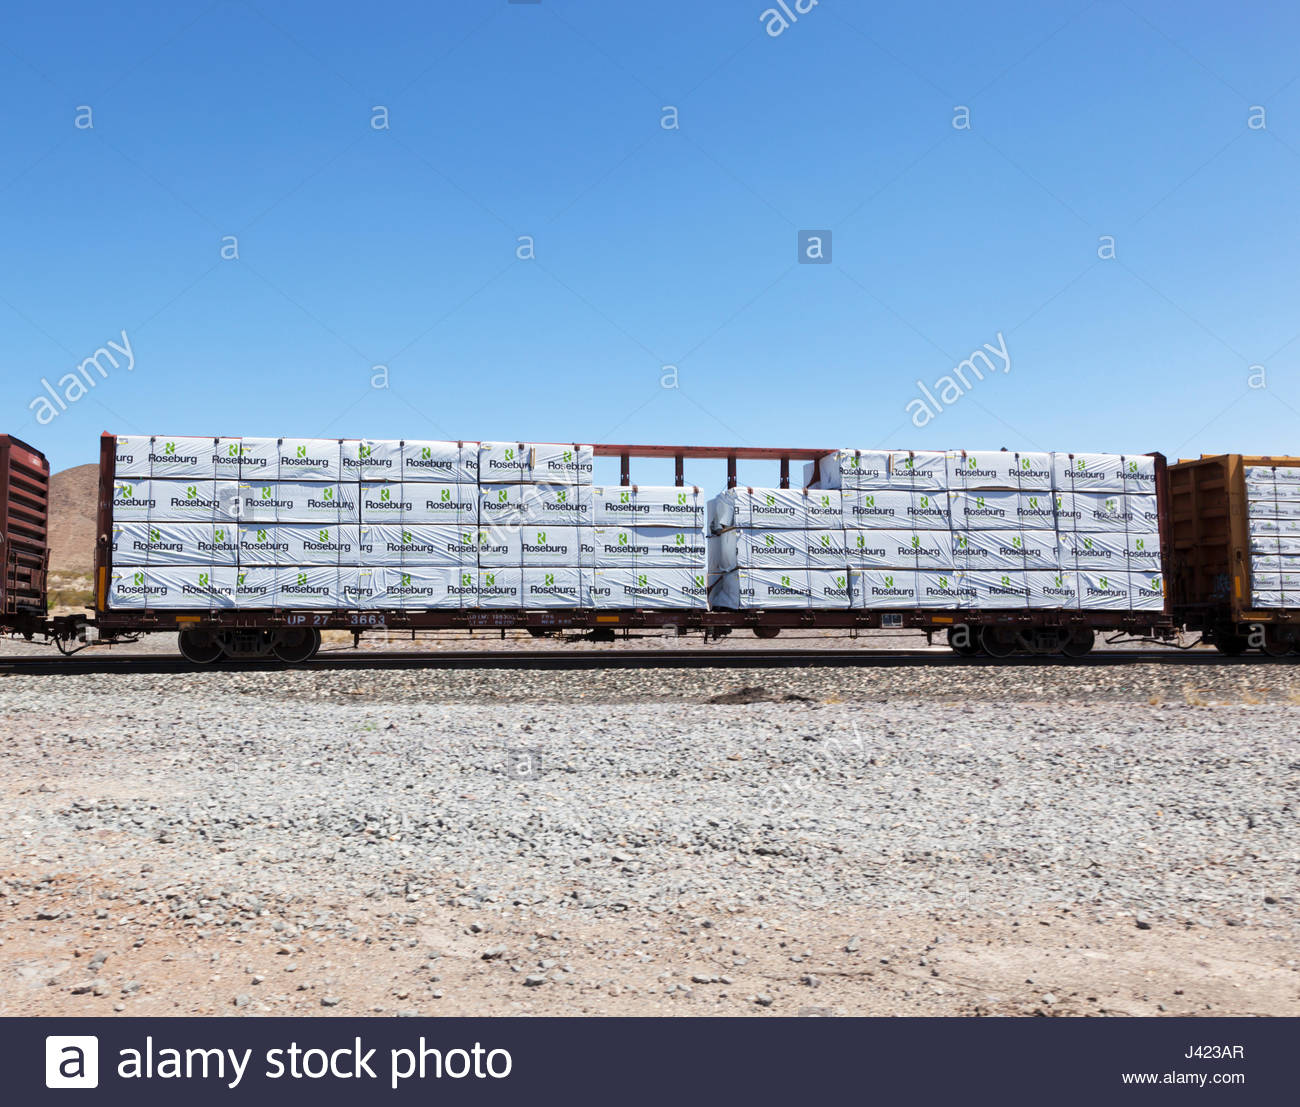 Railroad car loaded with bundled forest products  in southwestern New Mexico - Stock Image